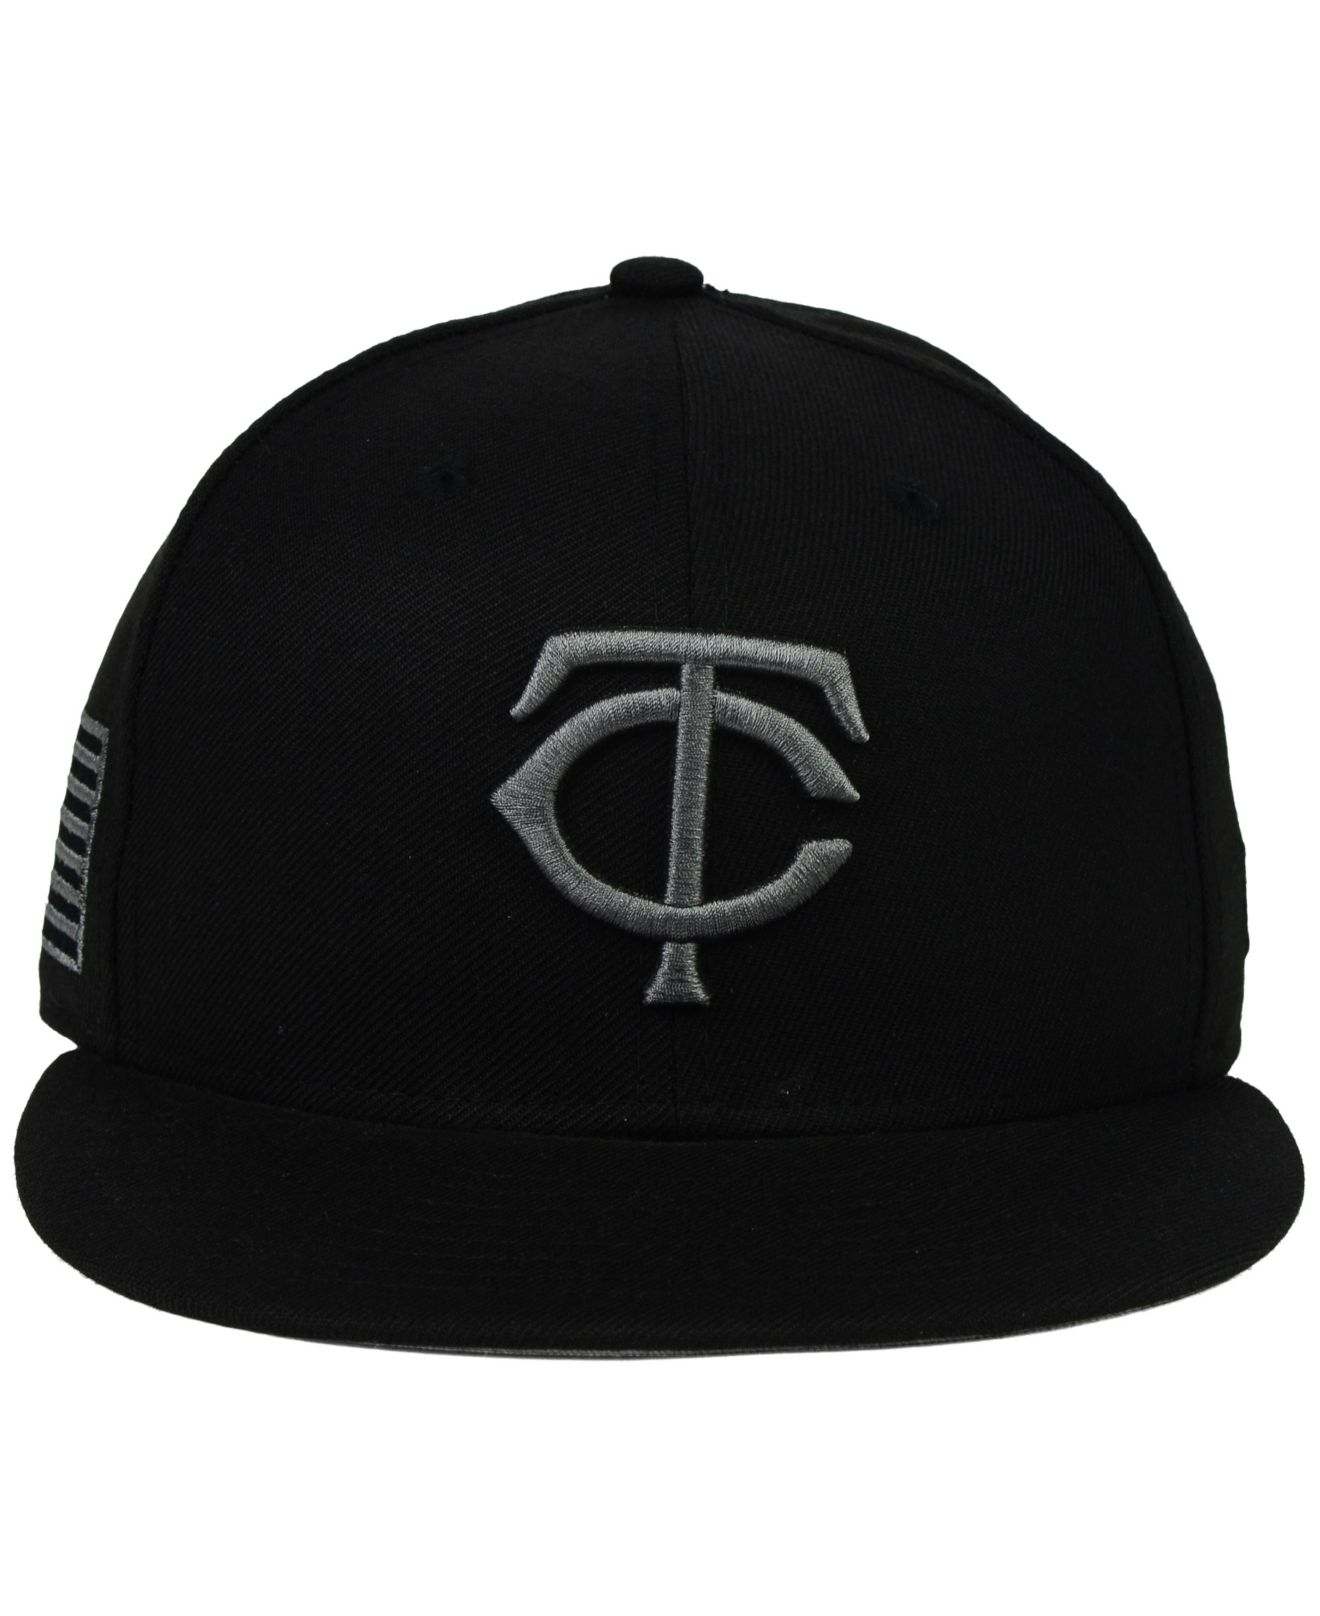 sale retailer eca09 2cc6b Lyst - KTZ Minnesota Twins American Patch Redux 59fifty Cap in Black ...